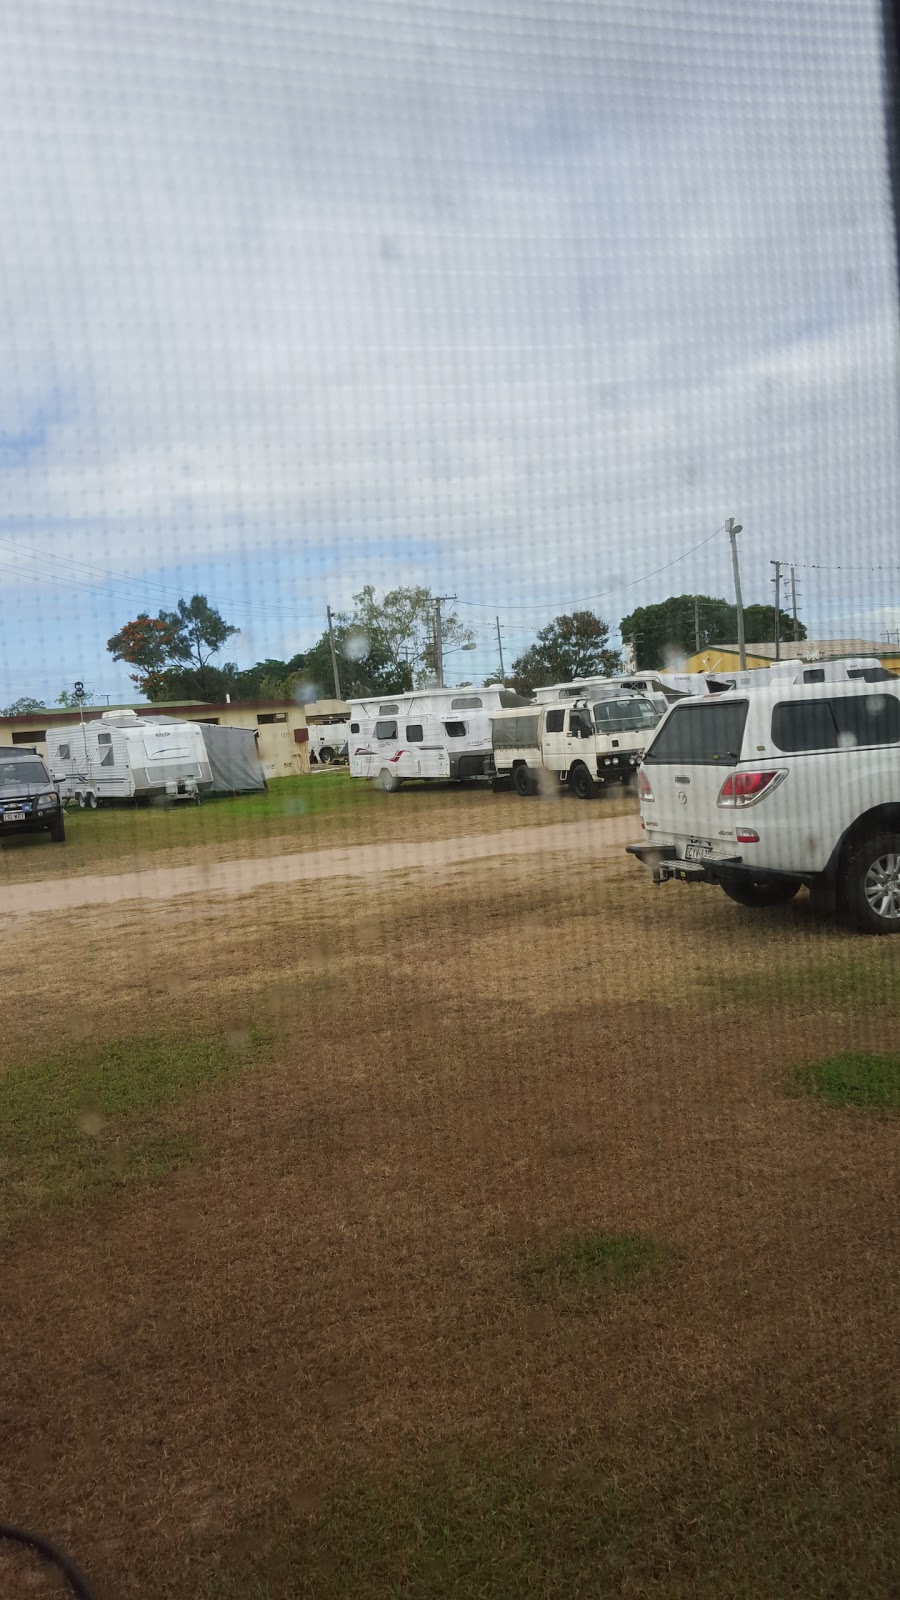 Home Hill Showgrounds | campground | Sixth Ave, Home Hill QLD 4806, Australia | 0414490016 OR +61 414 490 016